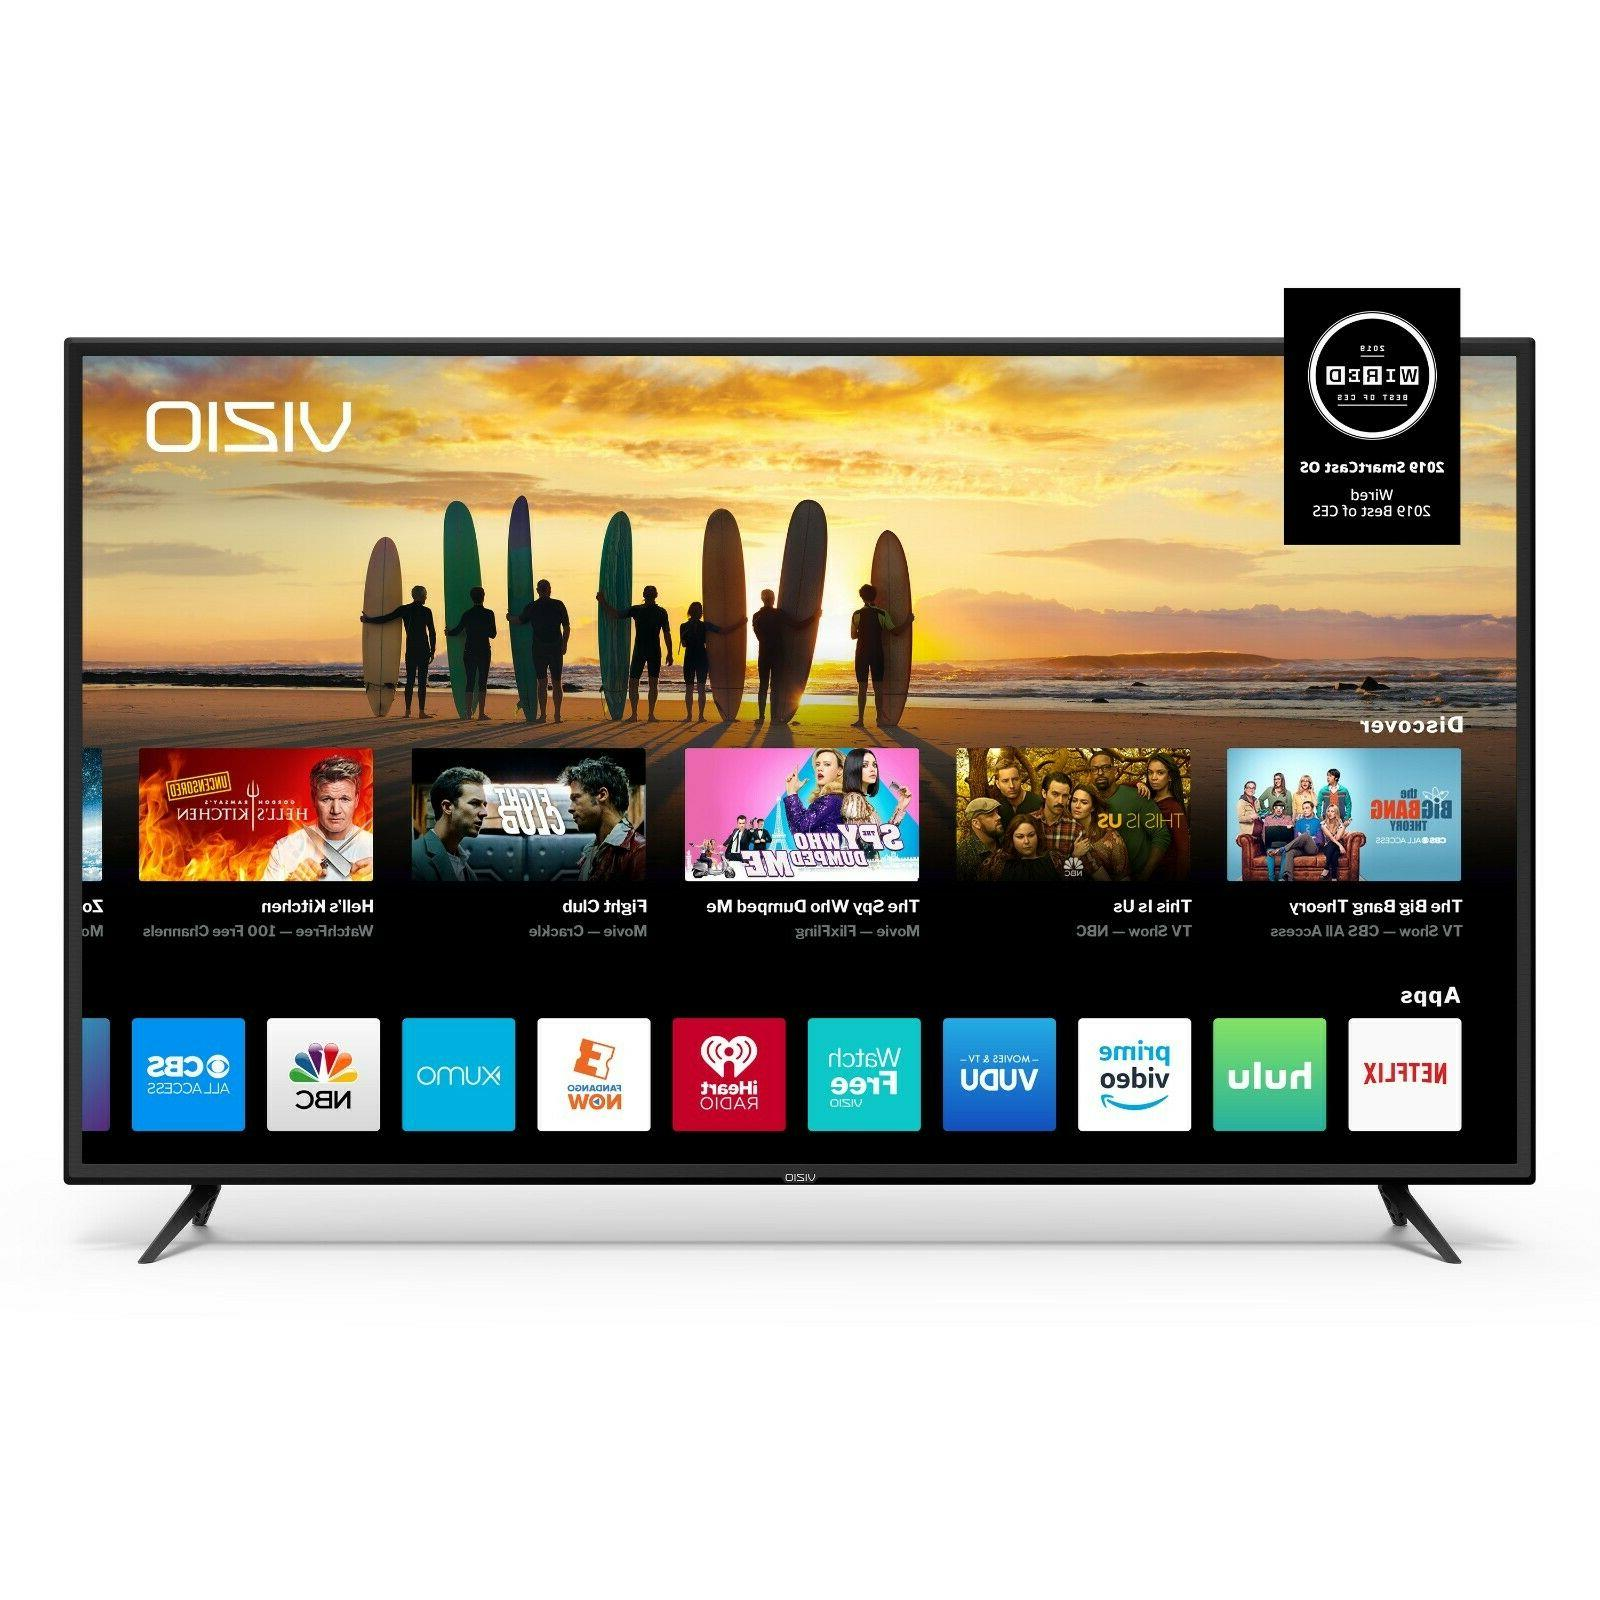 !! SEALED NEW V-Series V605-G3 60-Inch Ultra Smart HDR TV !!